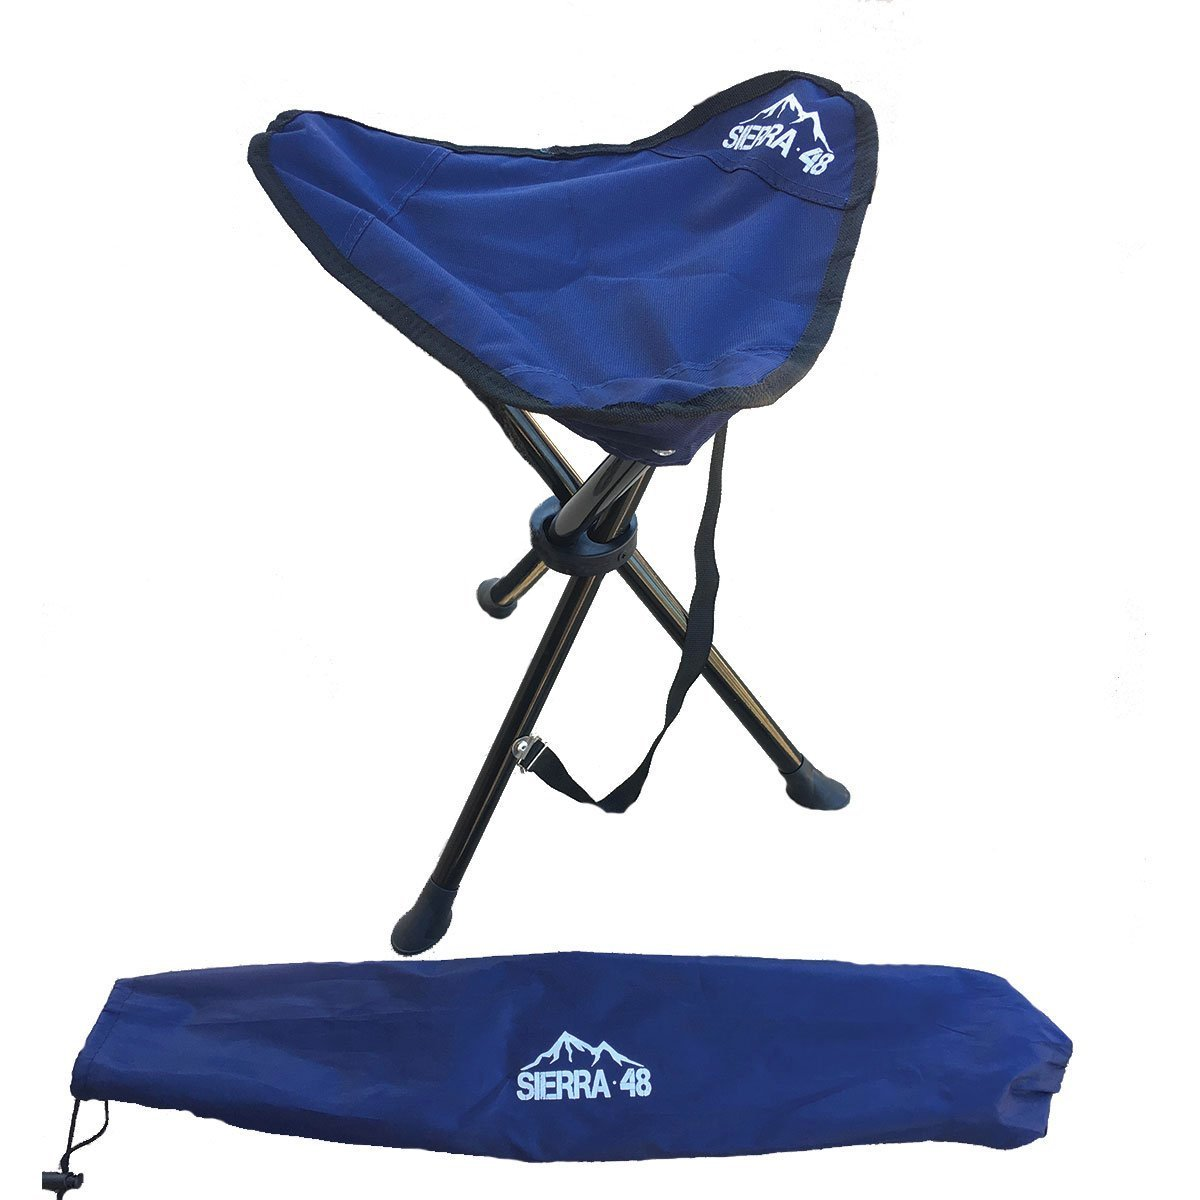 Camping Tripod Stool Perfect Hiking Folding Chair with Shoulder Strap and carrying case